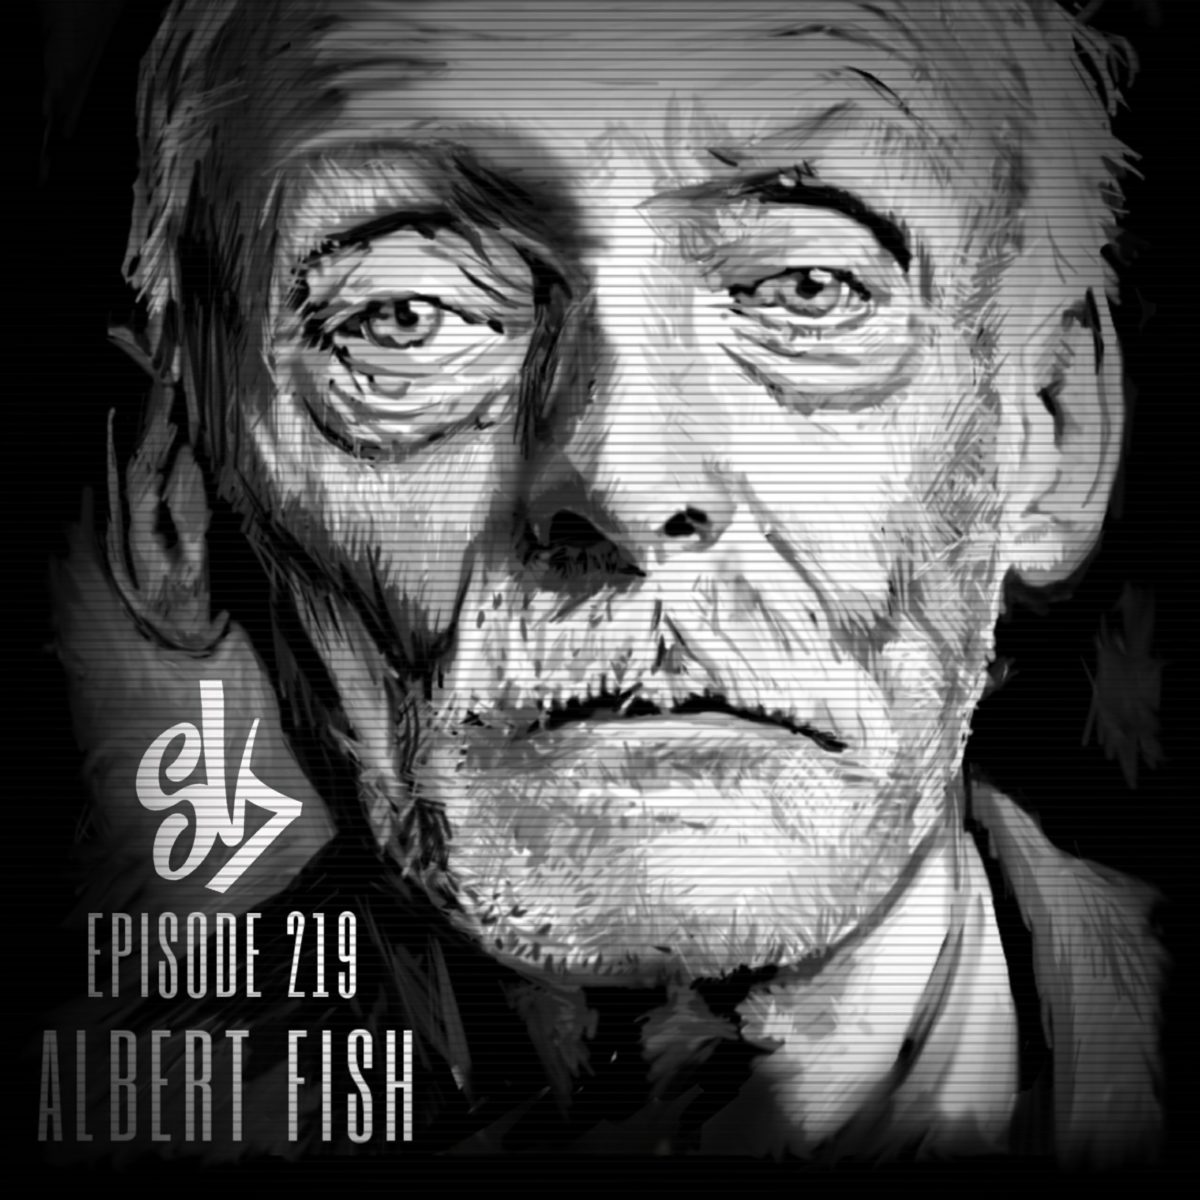 sofa king podcast material in bangalore episode 219 albert fish the werewolf of wysteria